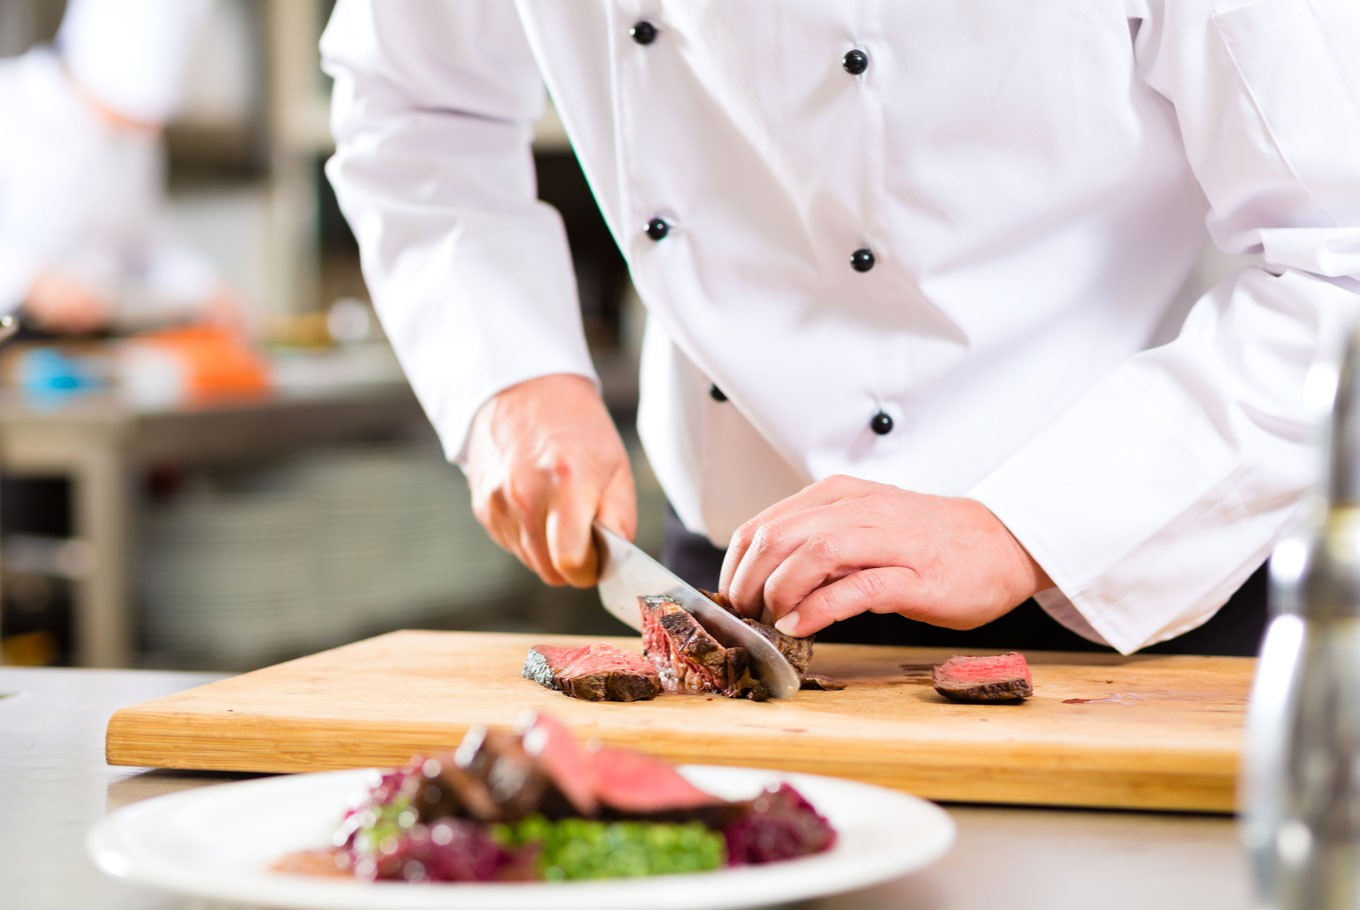 Indonesian chefs shine on global stage